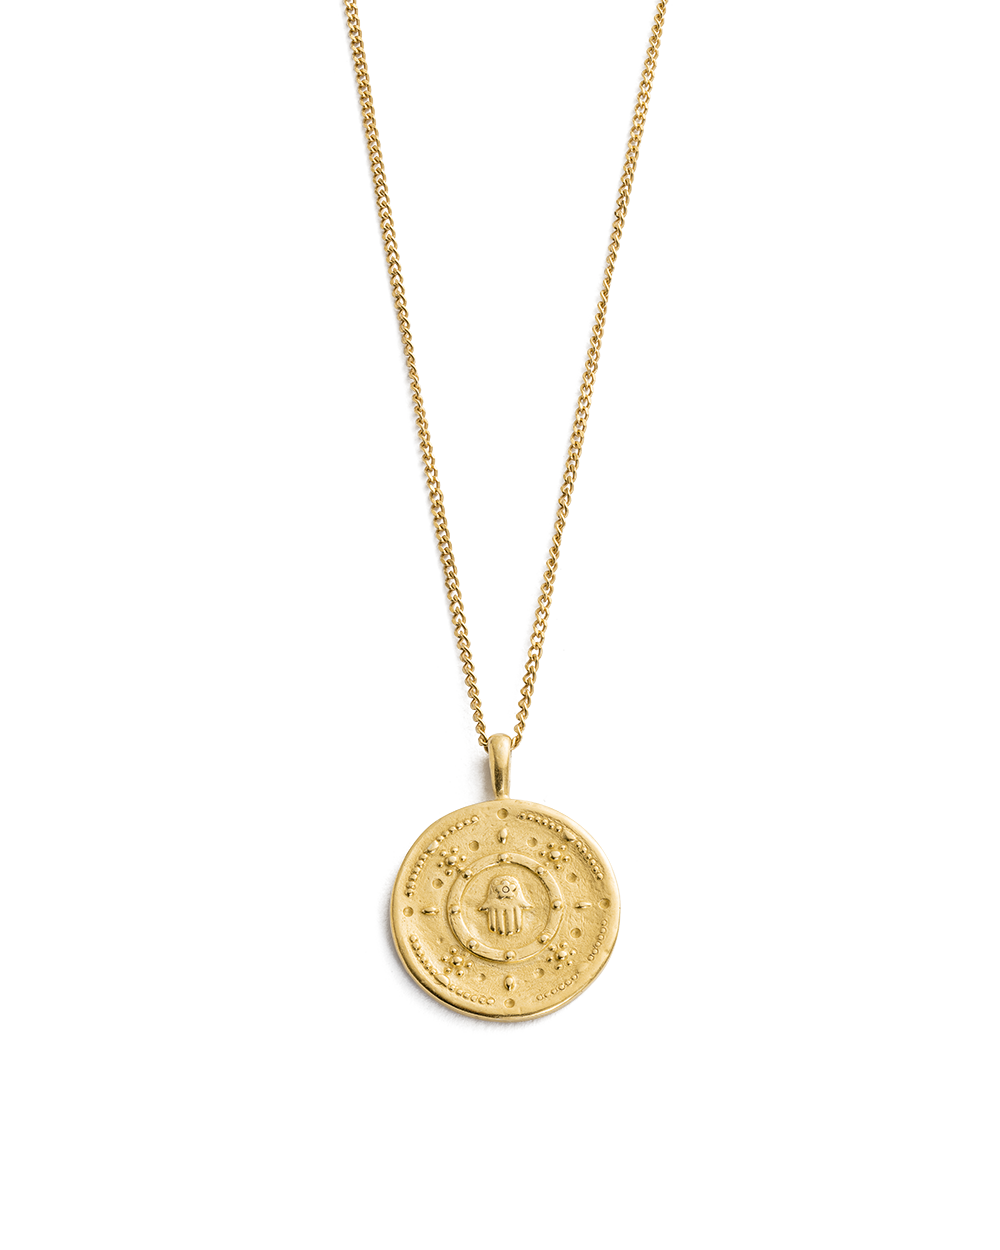 HAMSA PROTECTION COIN NECKLACE (18K-GOLD-VERMEIL)